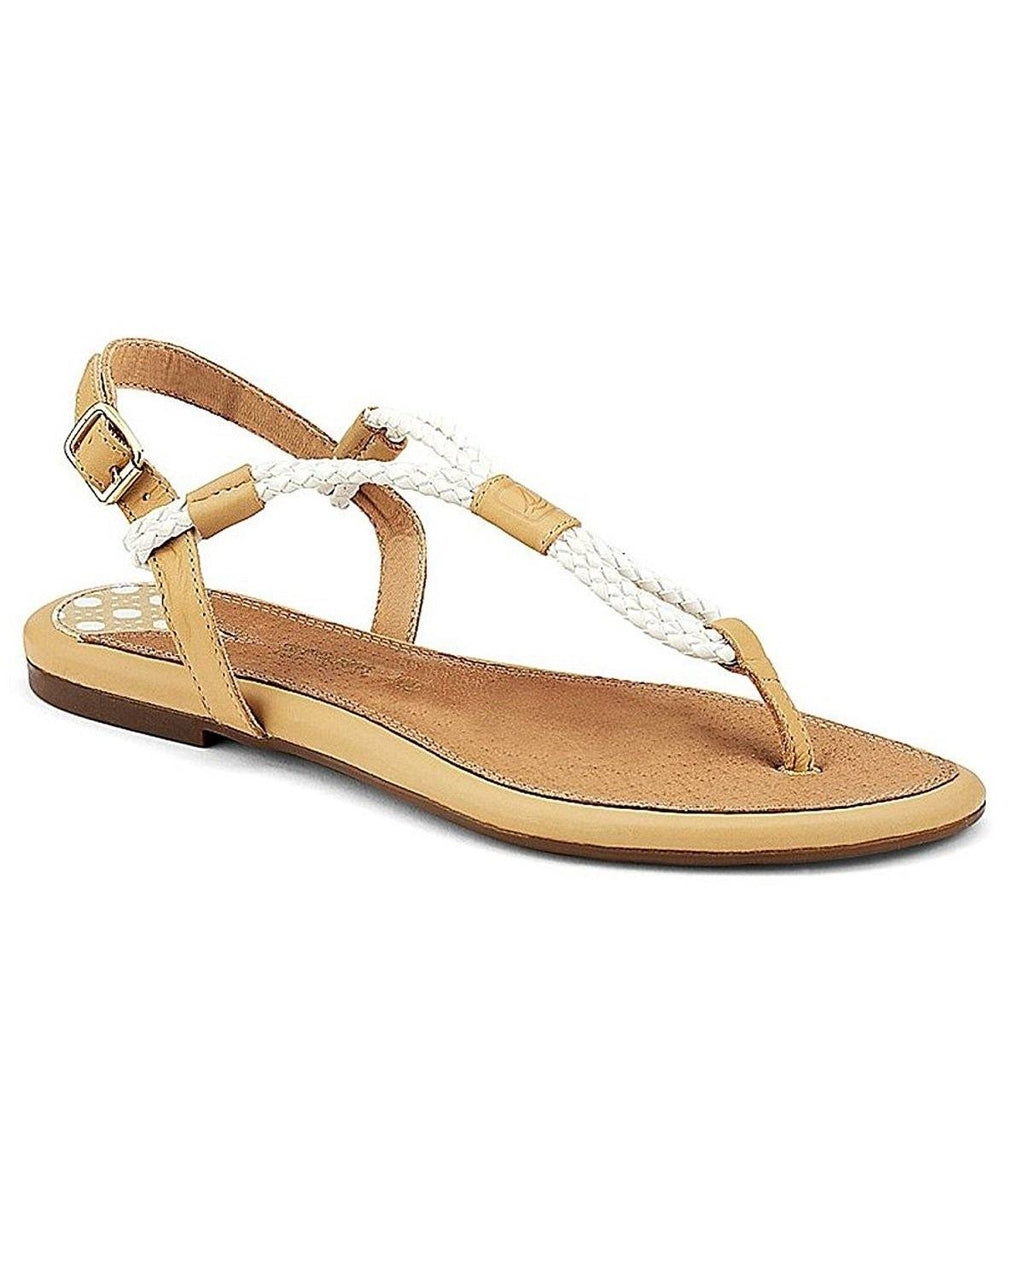 Sperry Top-Sider Women's Lacie Sandal